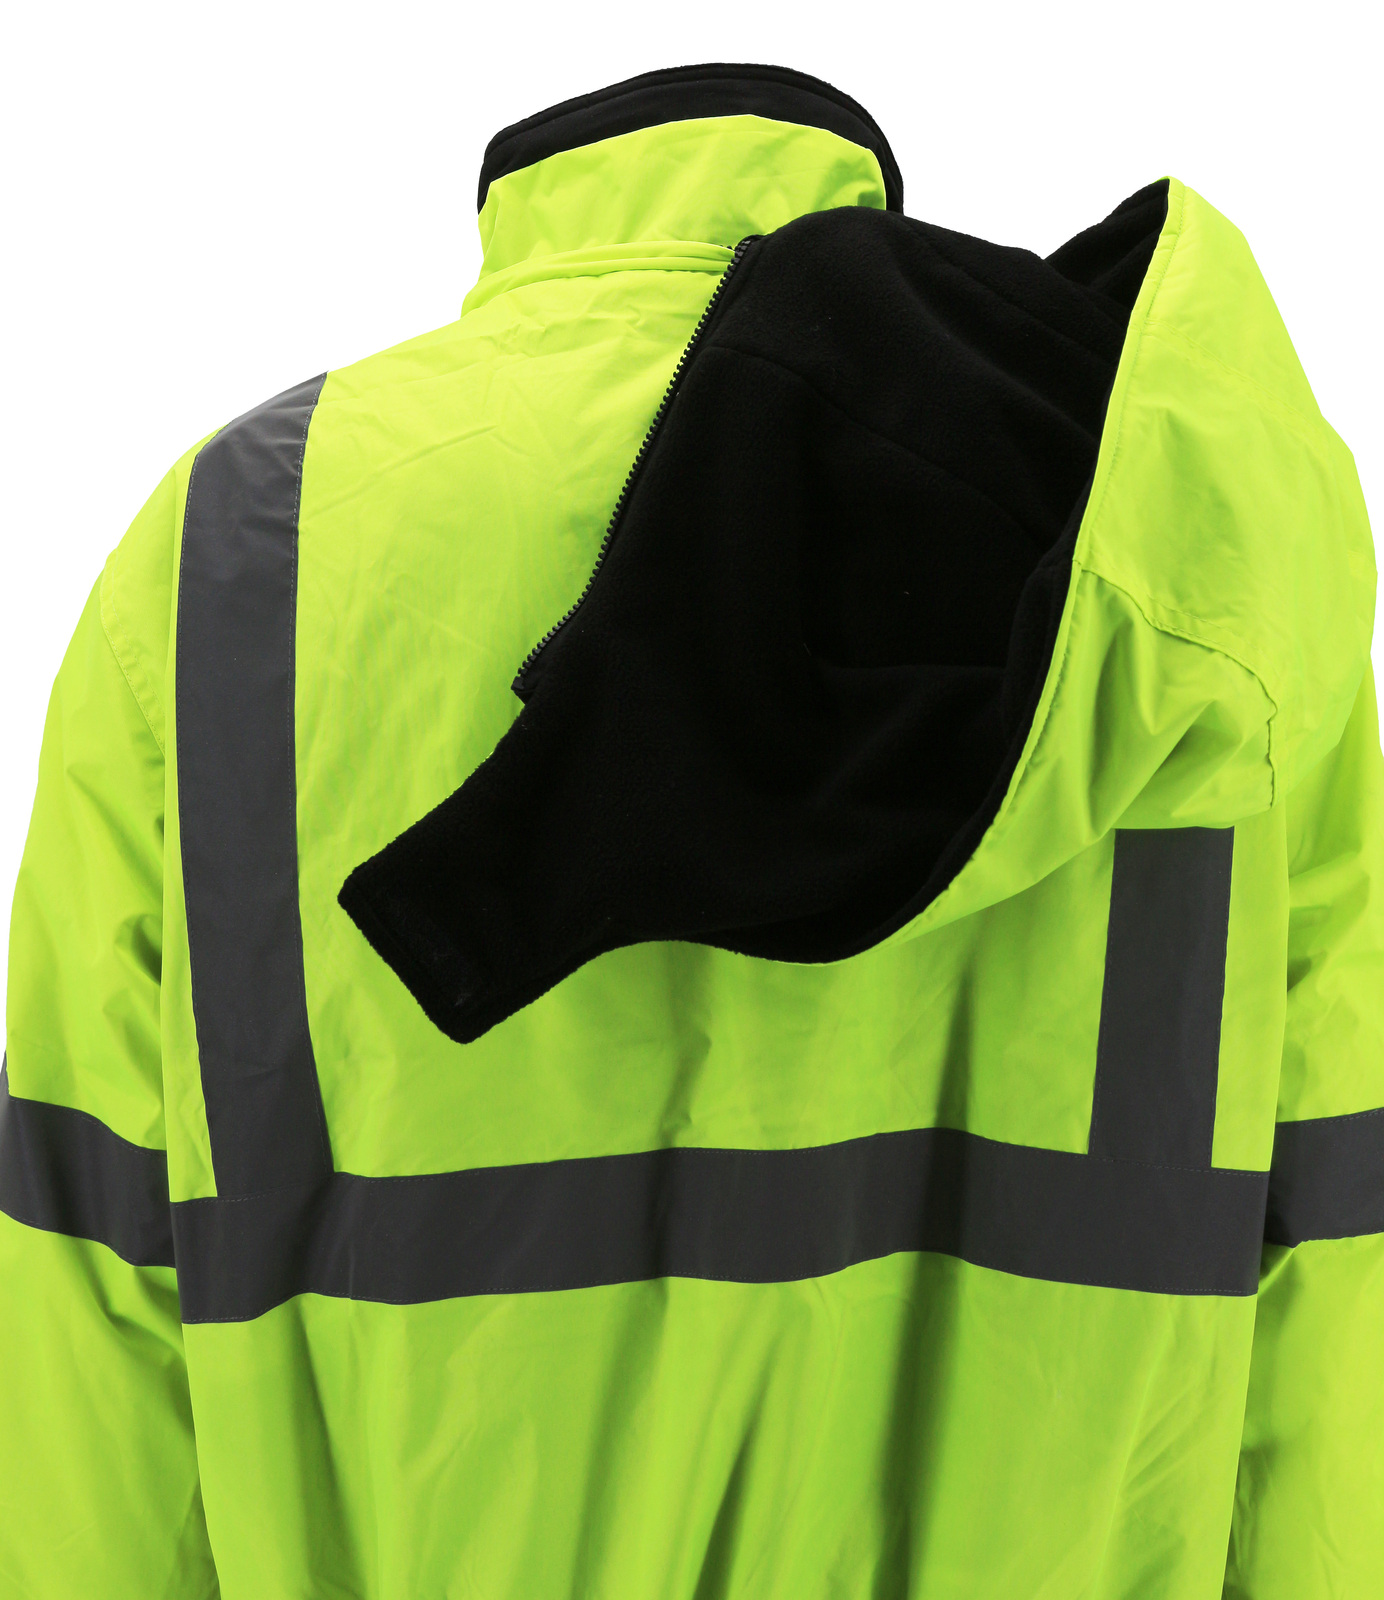 Men's Class 3 Safety High Visibility Water Resistant Reflective Neon Work Jacket image 5